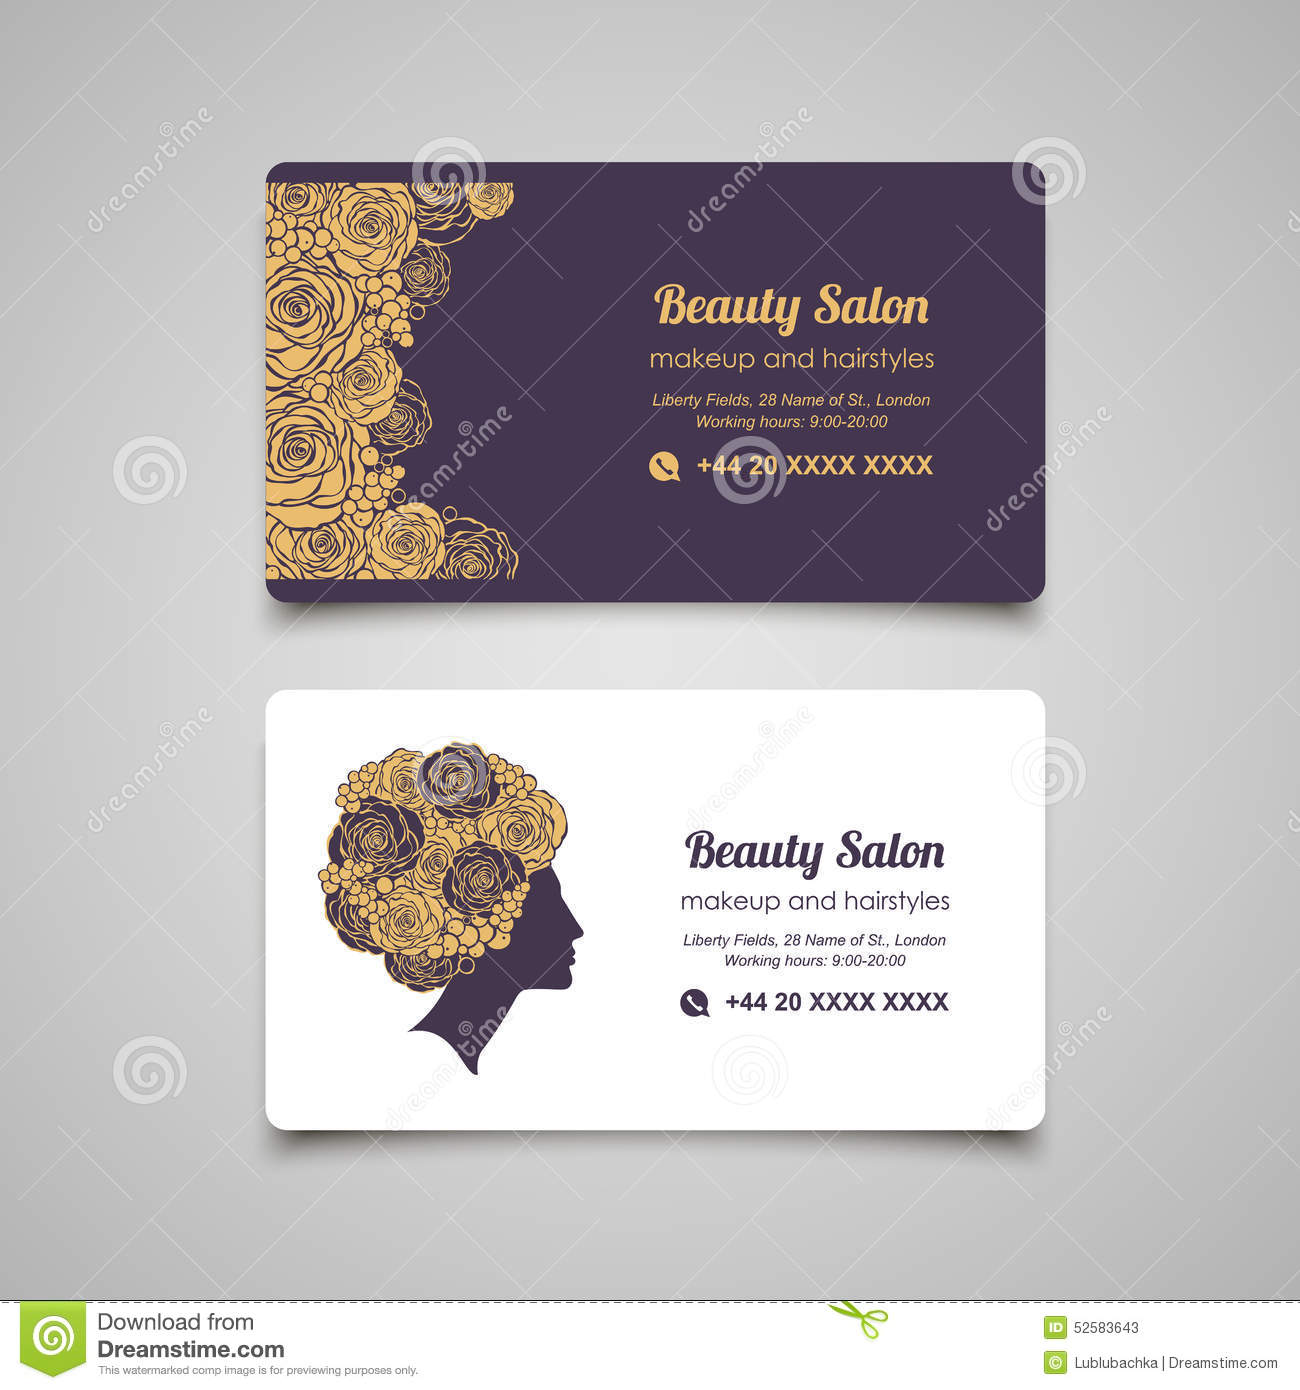 Beauty Salon Luxury Business Card Design Template With Beautiful ...